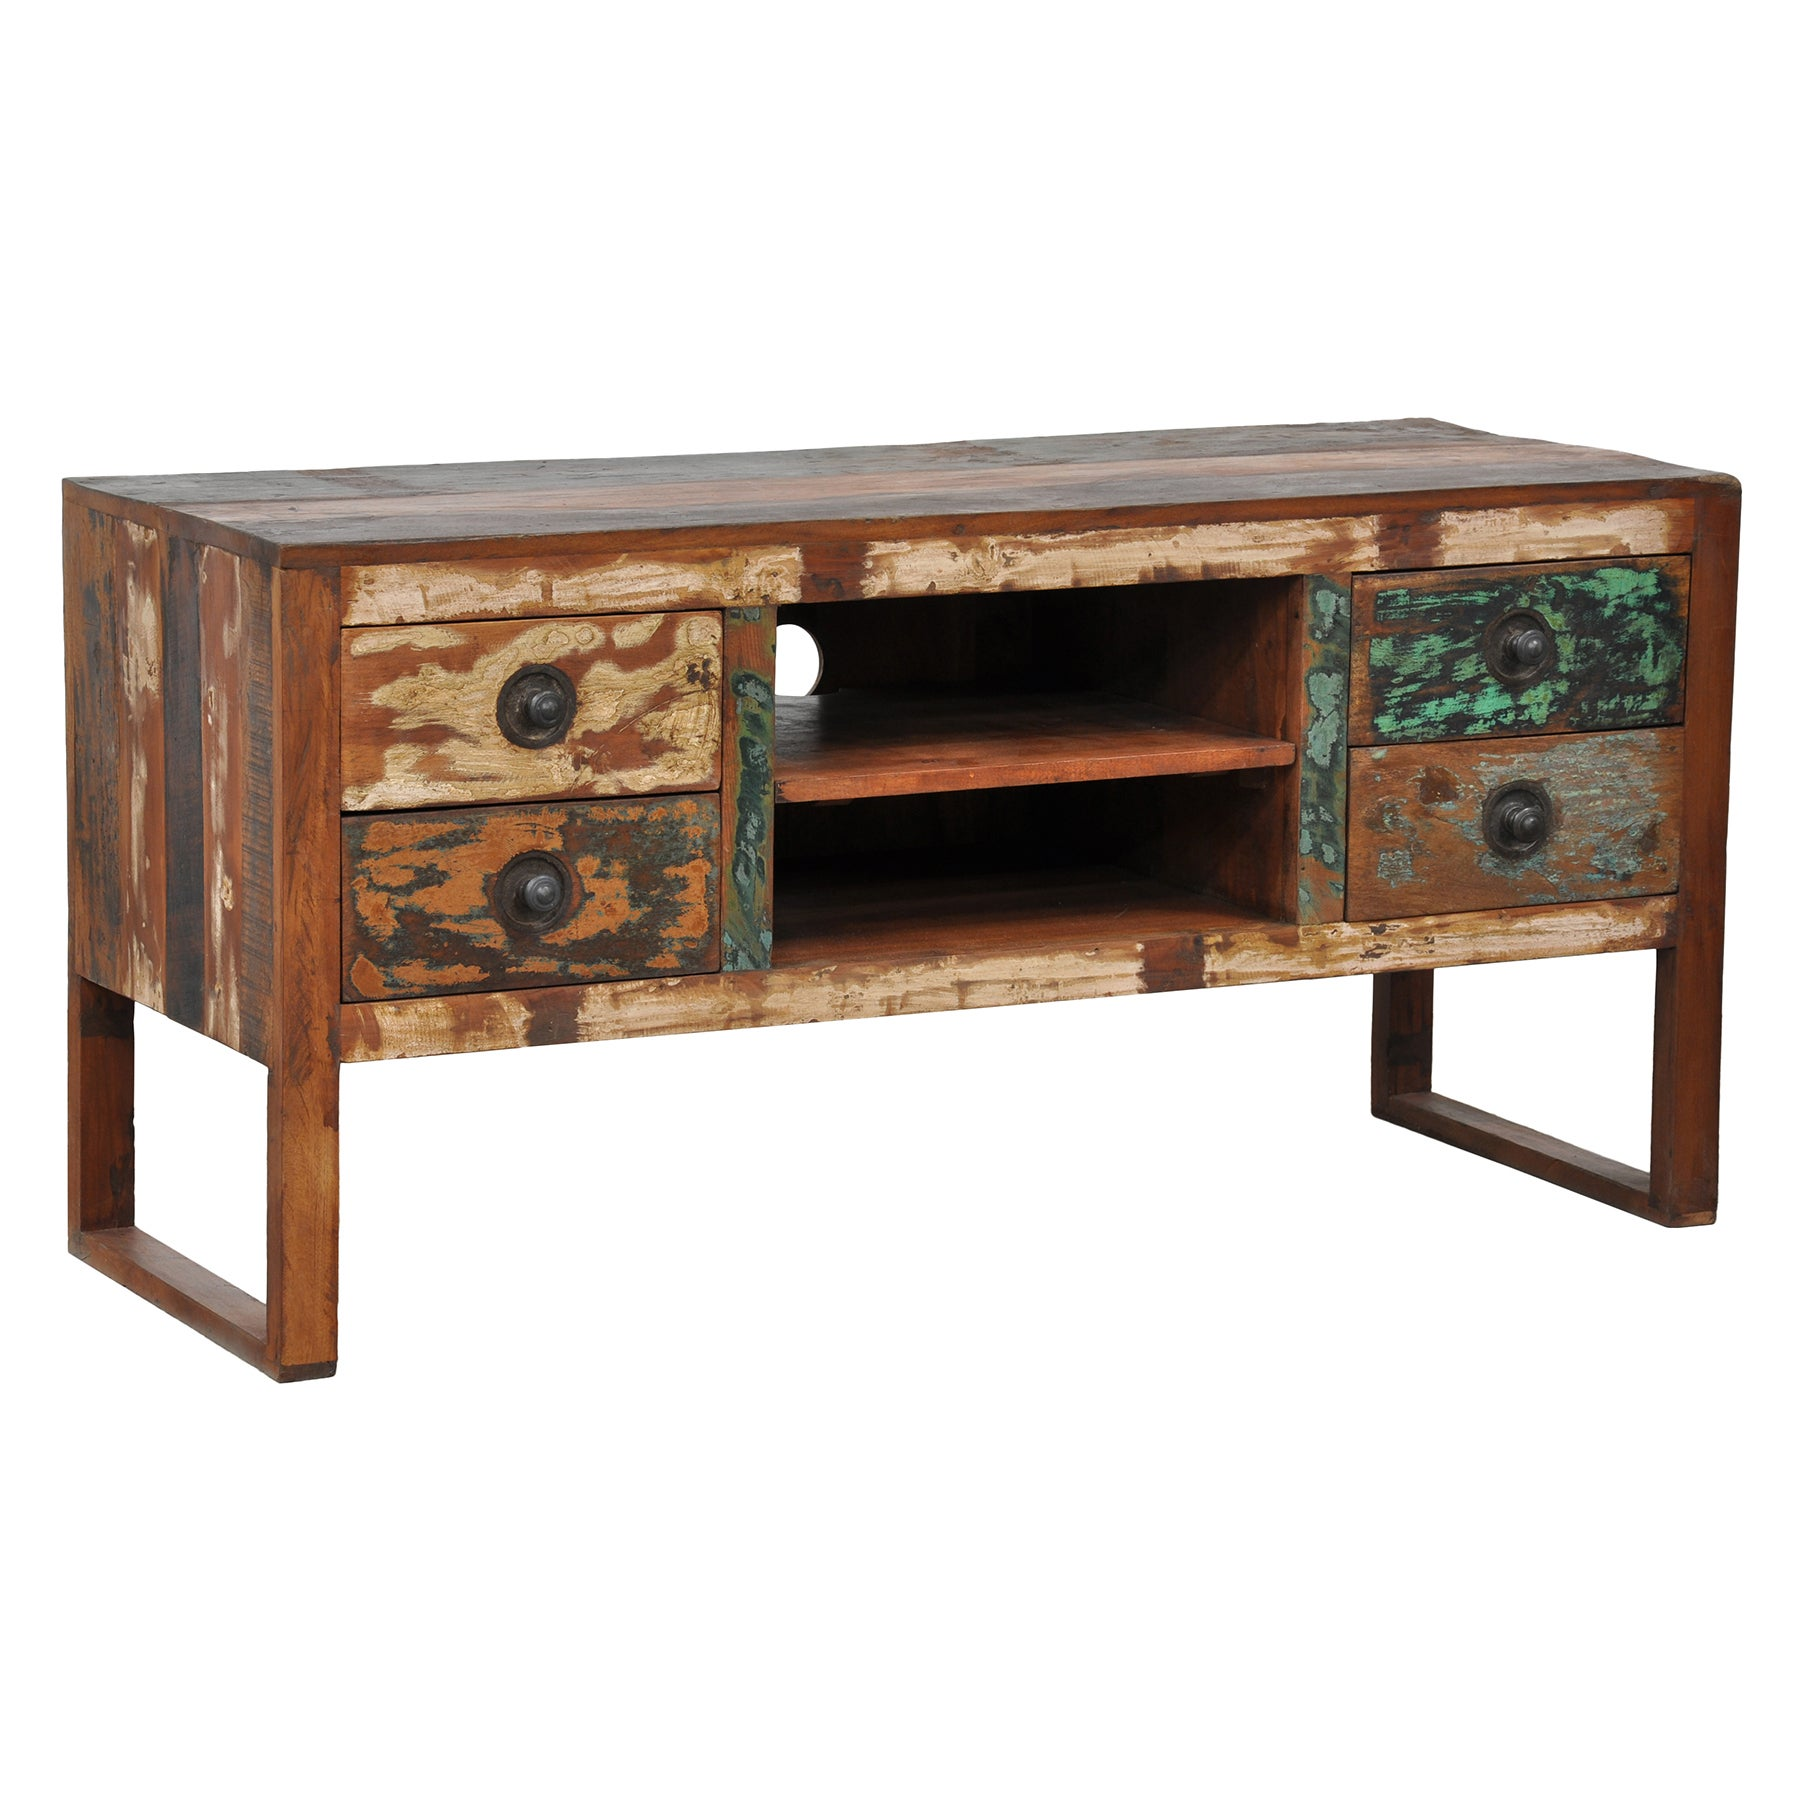 Kosas Collections 'Mullin' Reclaimed Wood TV Stand at Sears.com